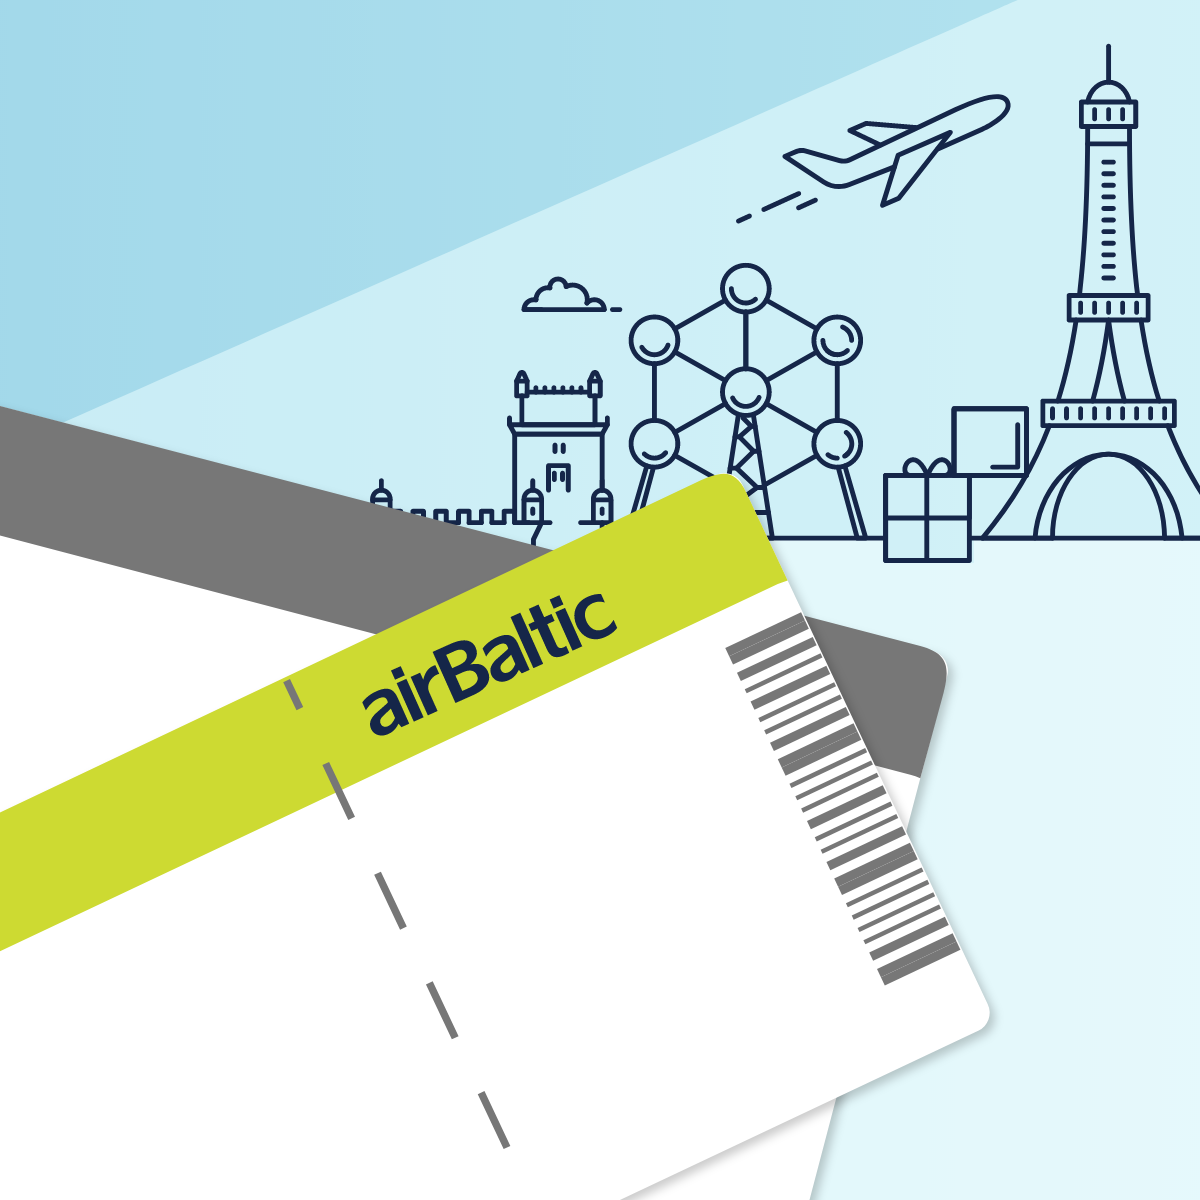 New! Easier way to book your reward flight. Spend points on a flight! image